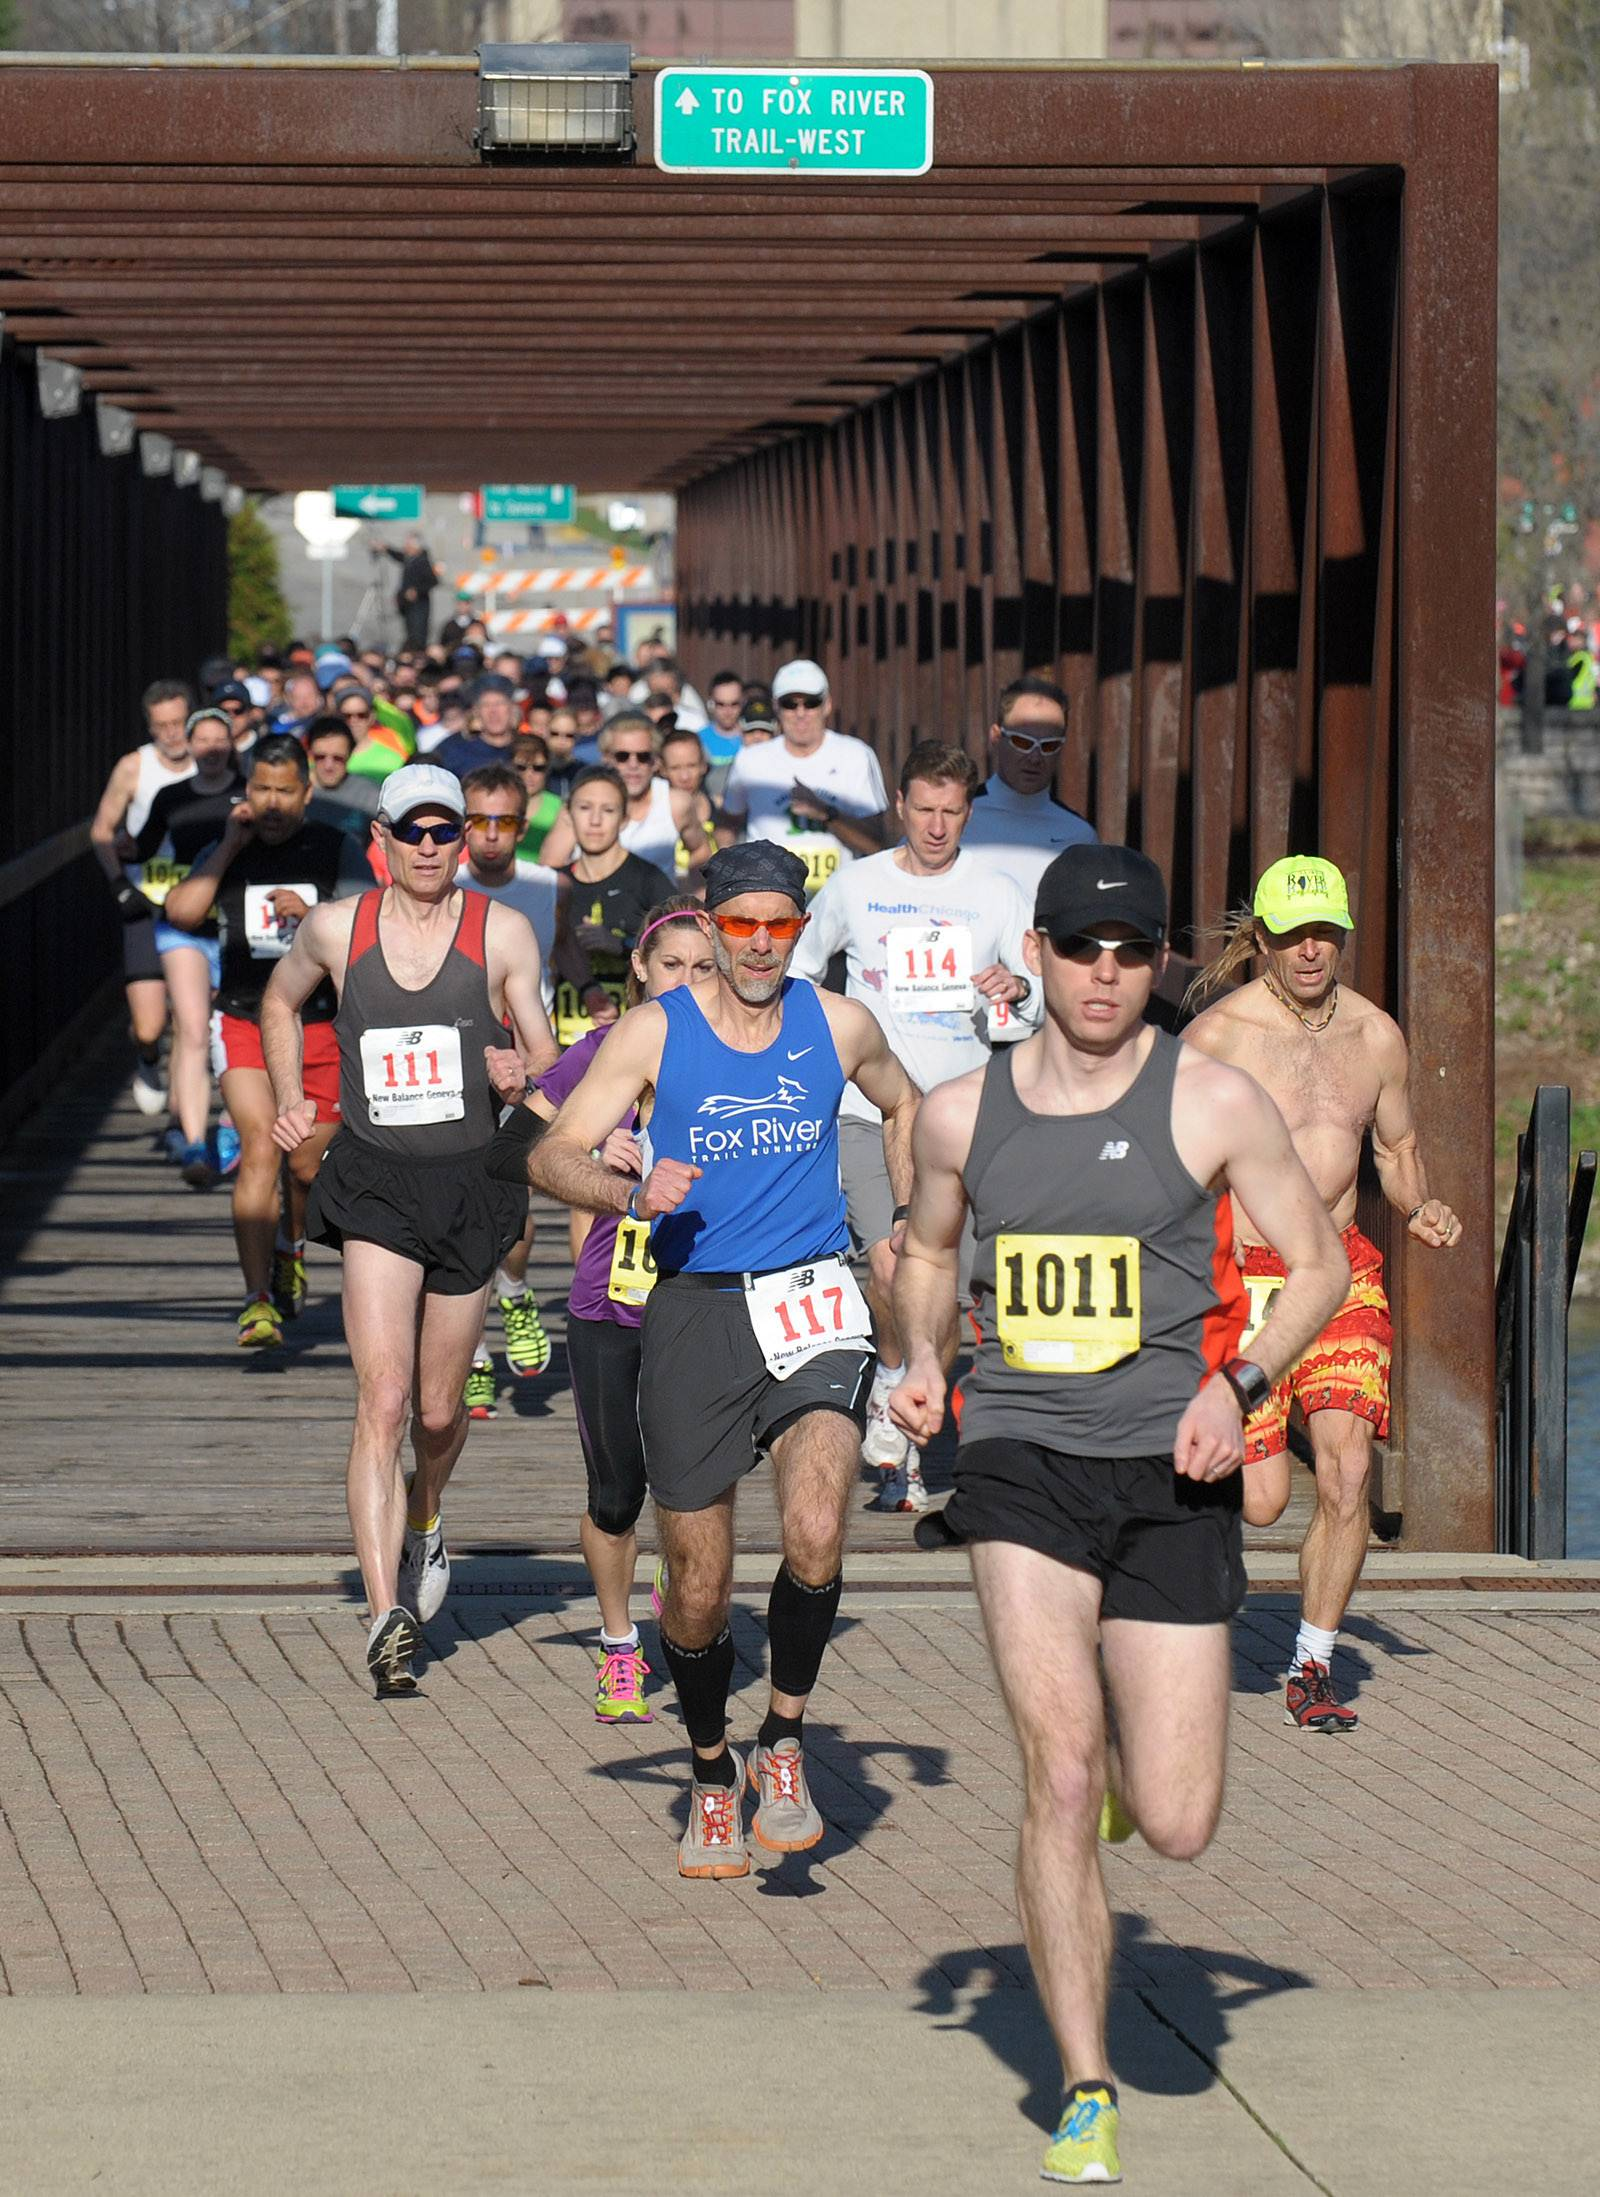 Runners take off across the Fox River on the pedestrian bridge for the Batavia Mothers' Club Foundation's 14th annual Fox Trot 5K/10K Saturday. This is the first year for the 10K. Tom Spadfora of Aurora (number 117) was the first runner to cross the finish line in the 5K.